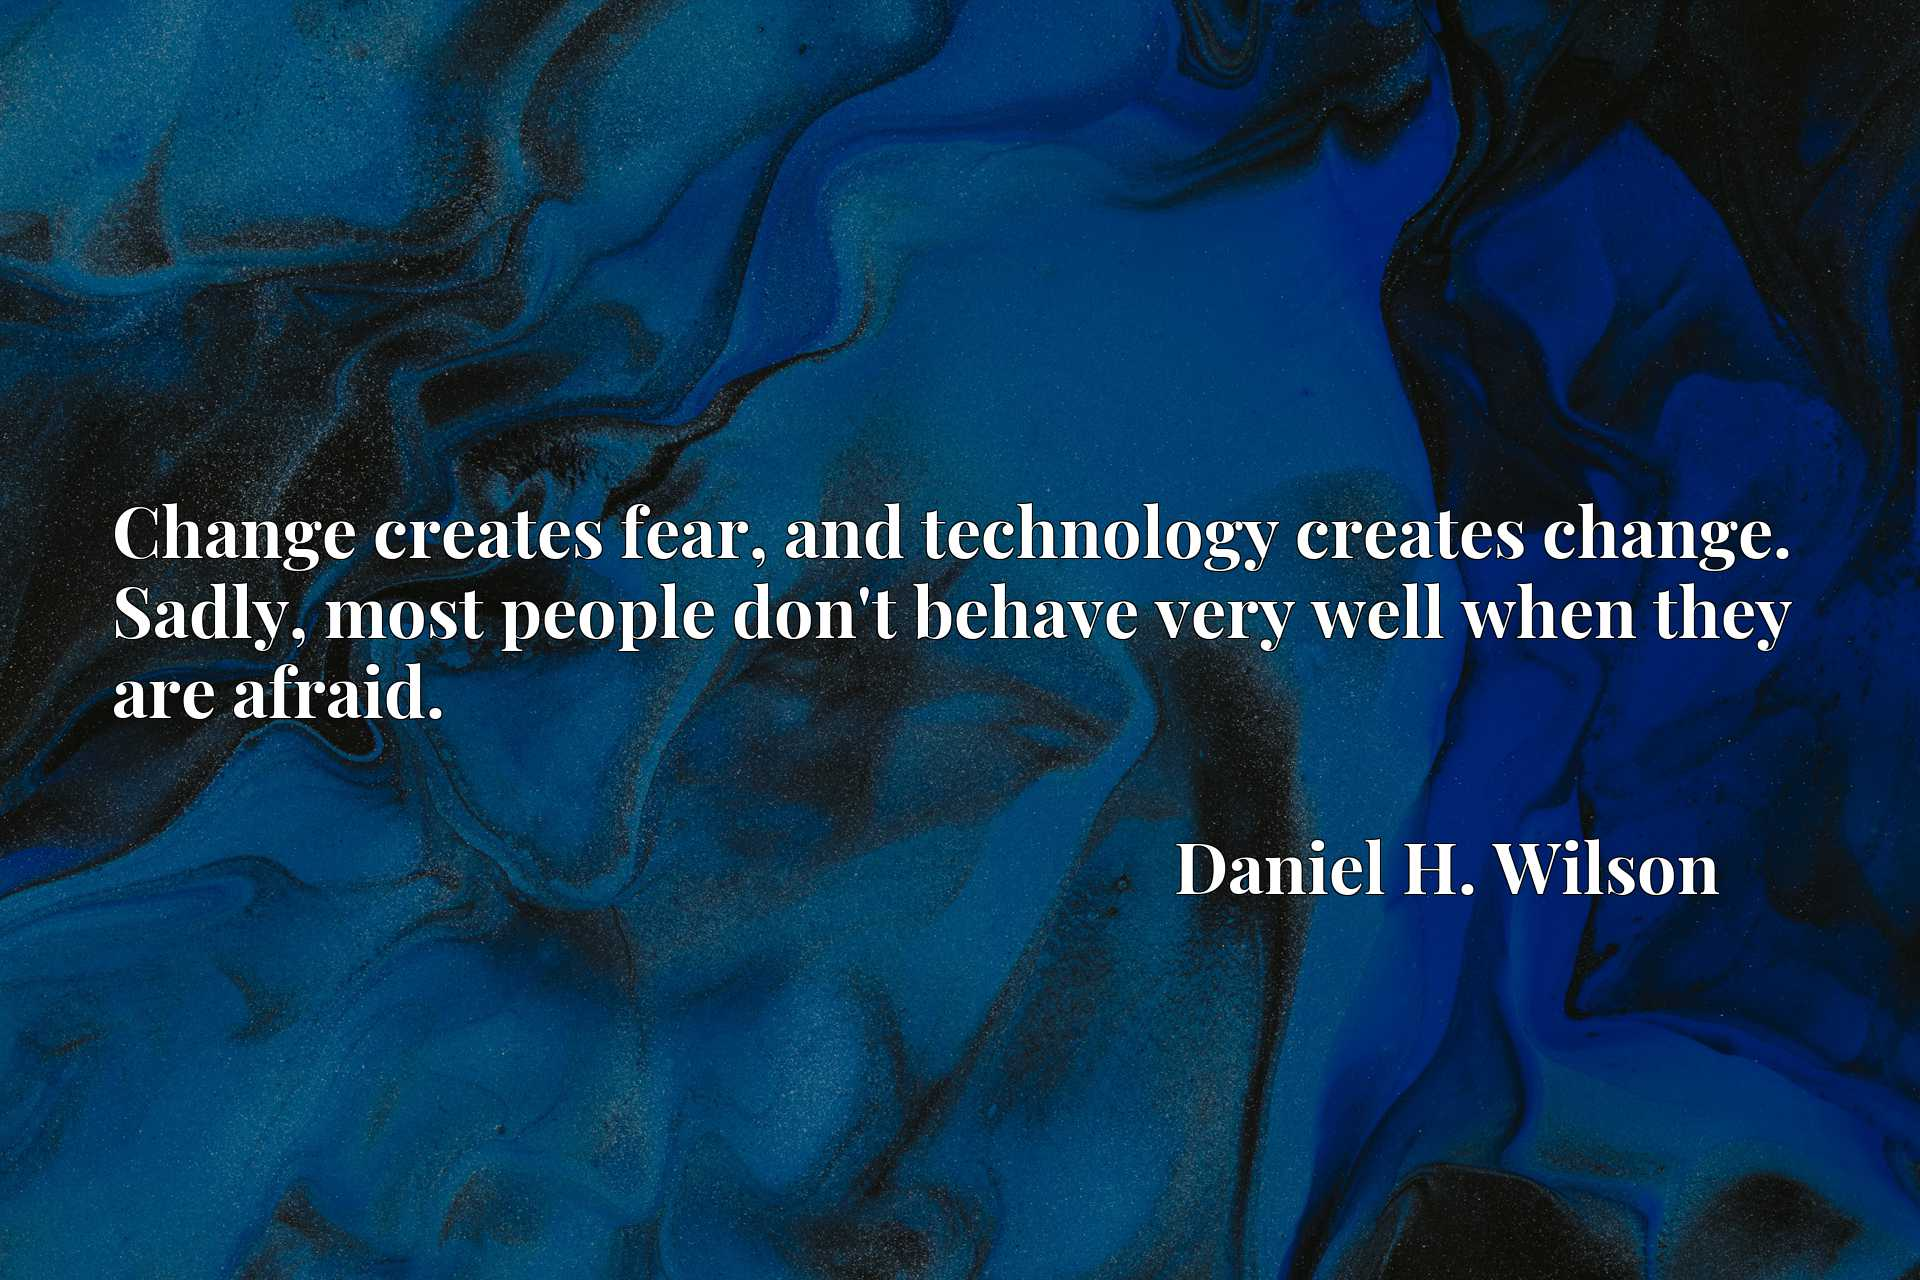 Change creates fear, and technology creates change. Sadly, most people don't behave very well when they are afraid.